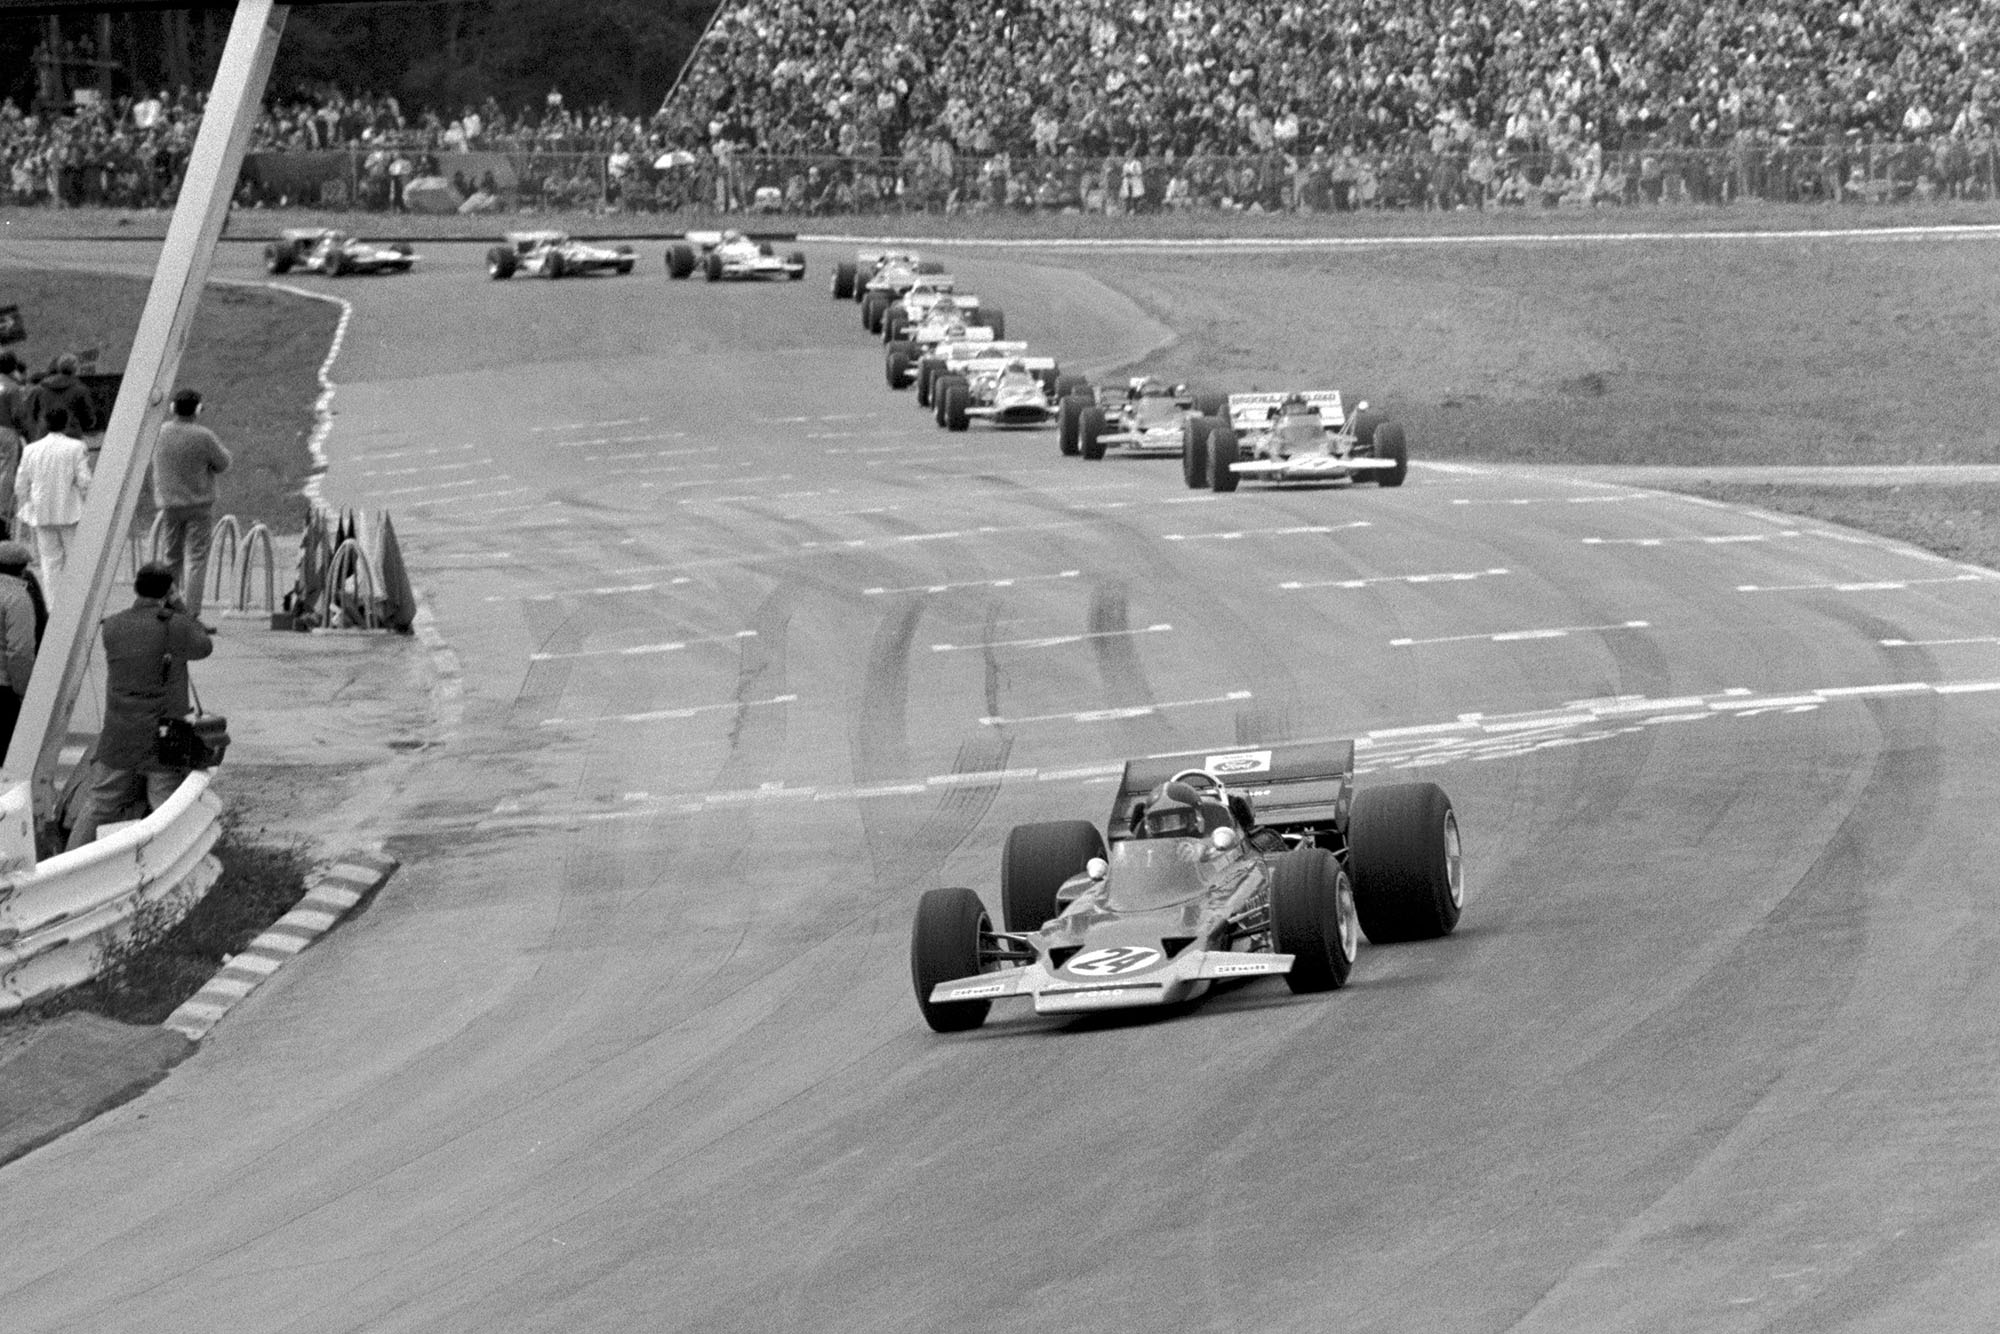 Emerson Fittipaldi driving for Lotus at the 1970 United States Grand Prix.